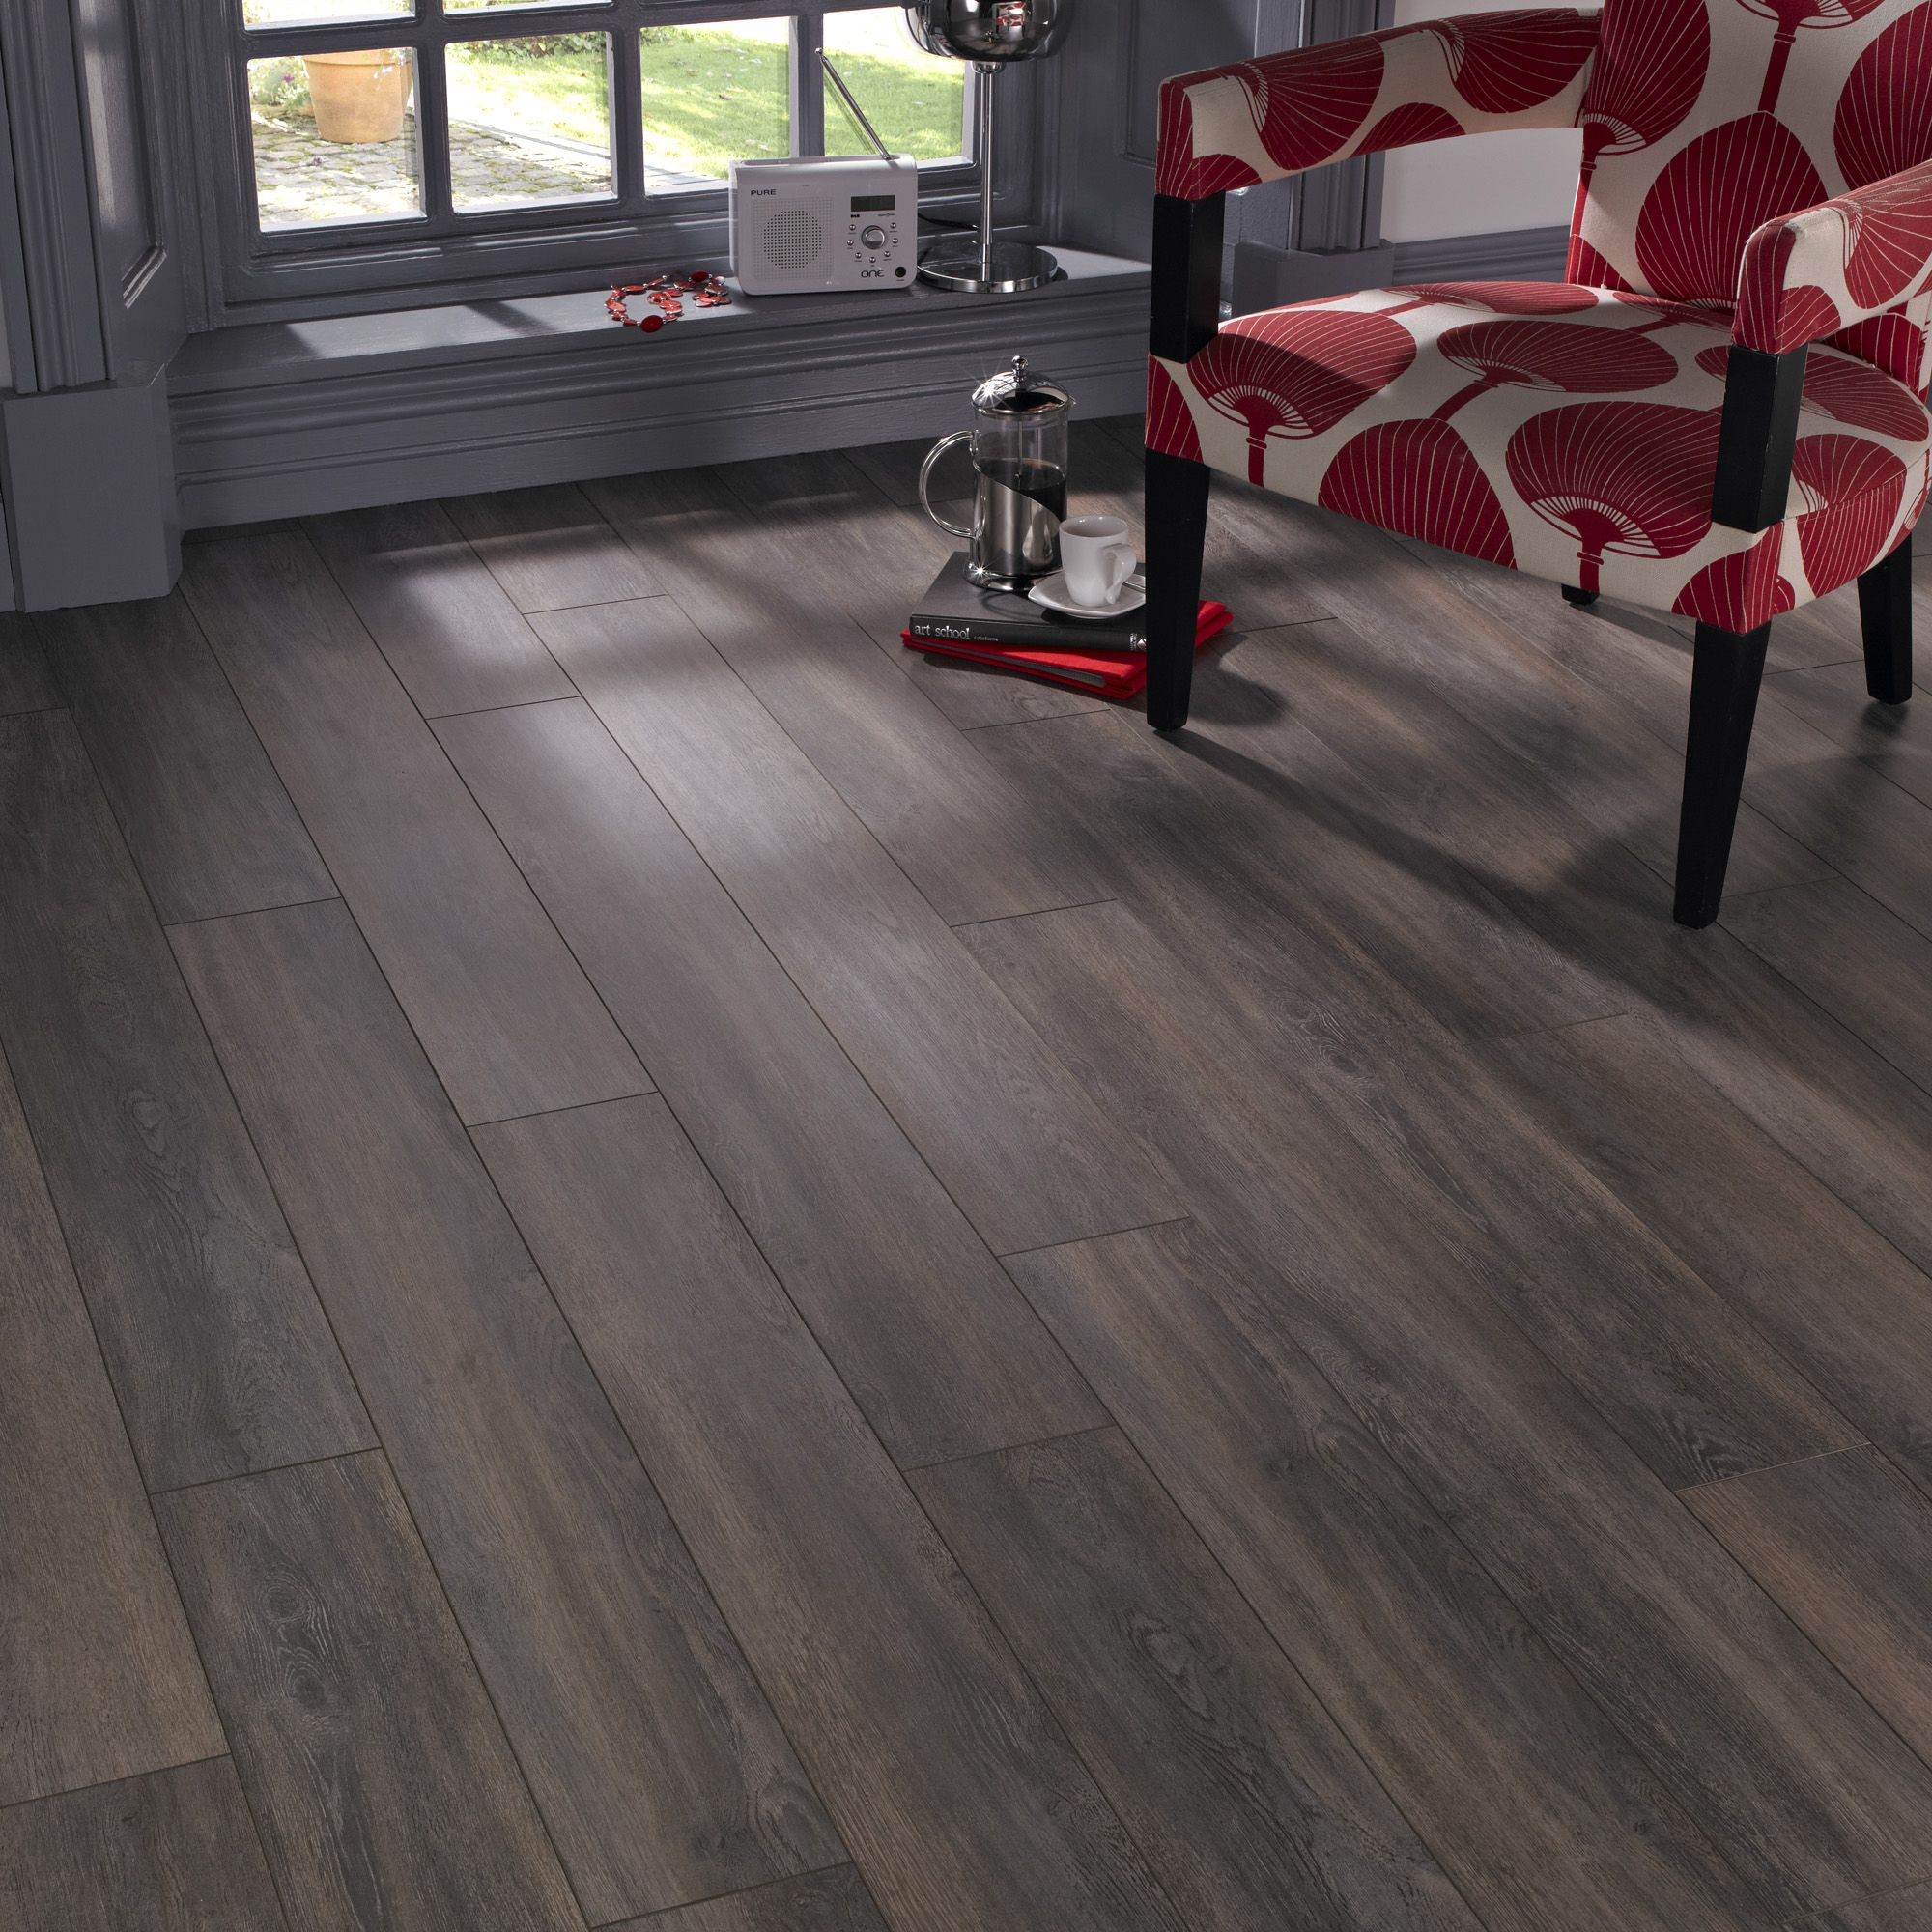 Bq Kitchen Flooring Belcanto Seville Spruce Effect Laminate Flooring 2 Ma2 Pack